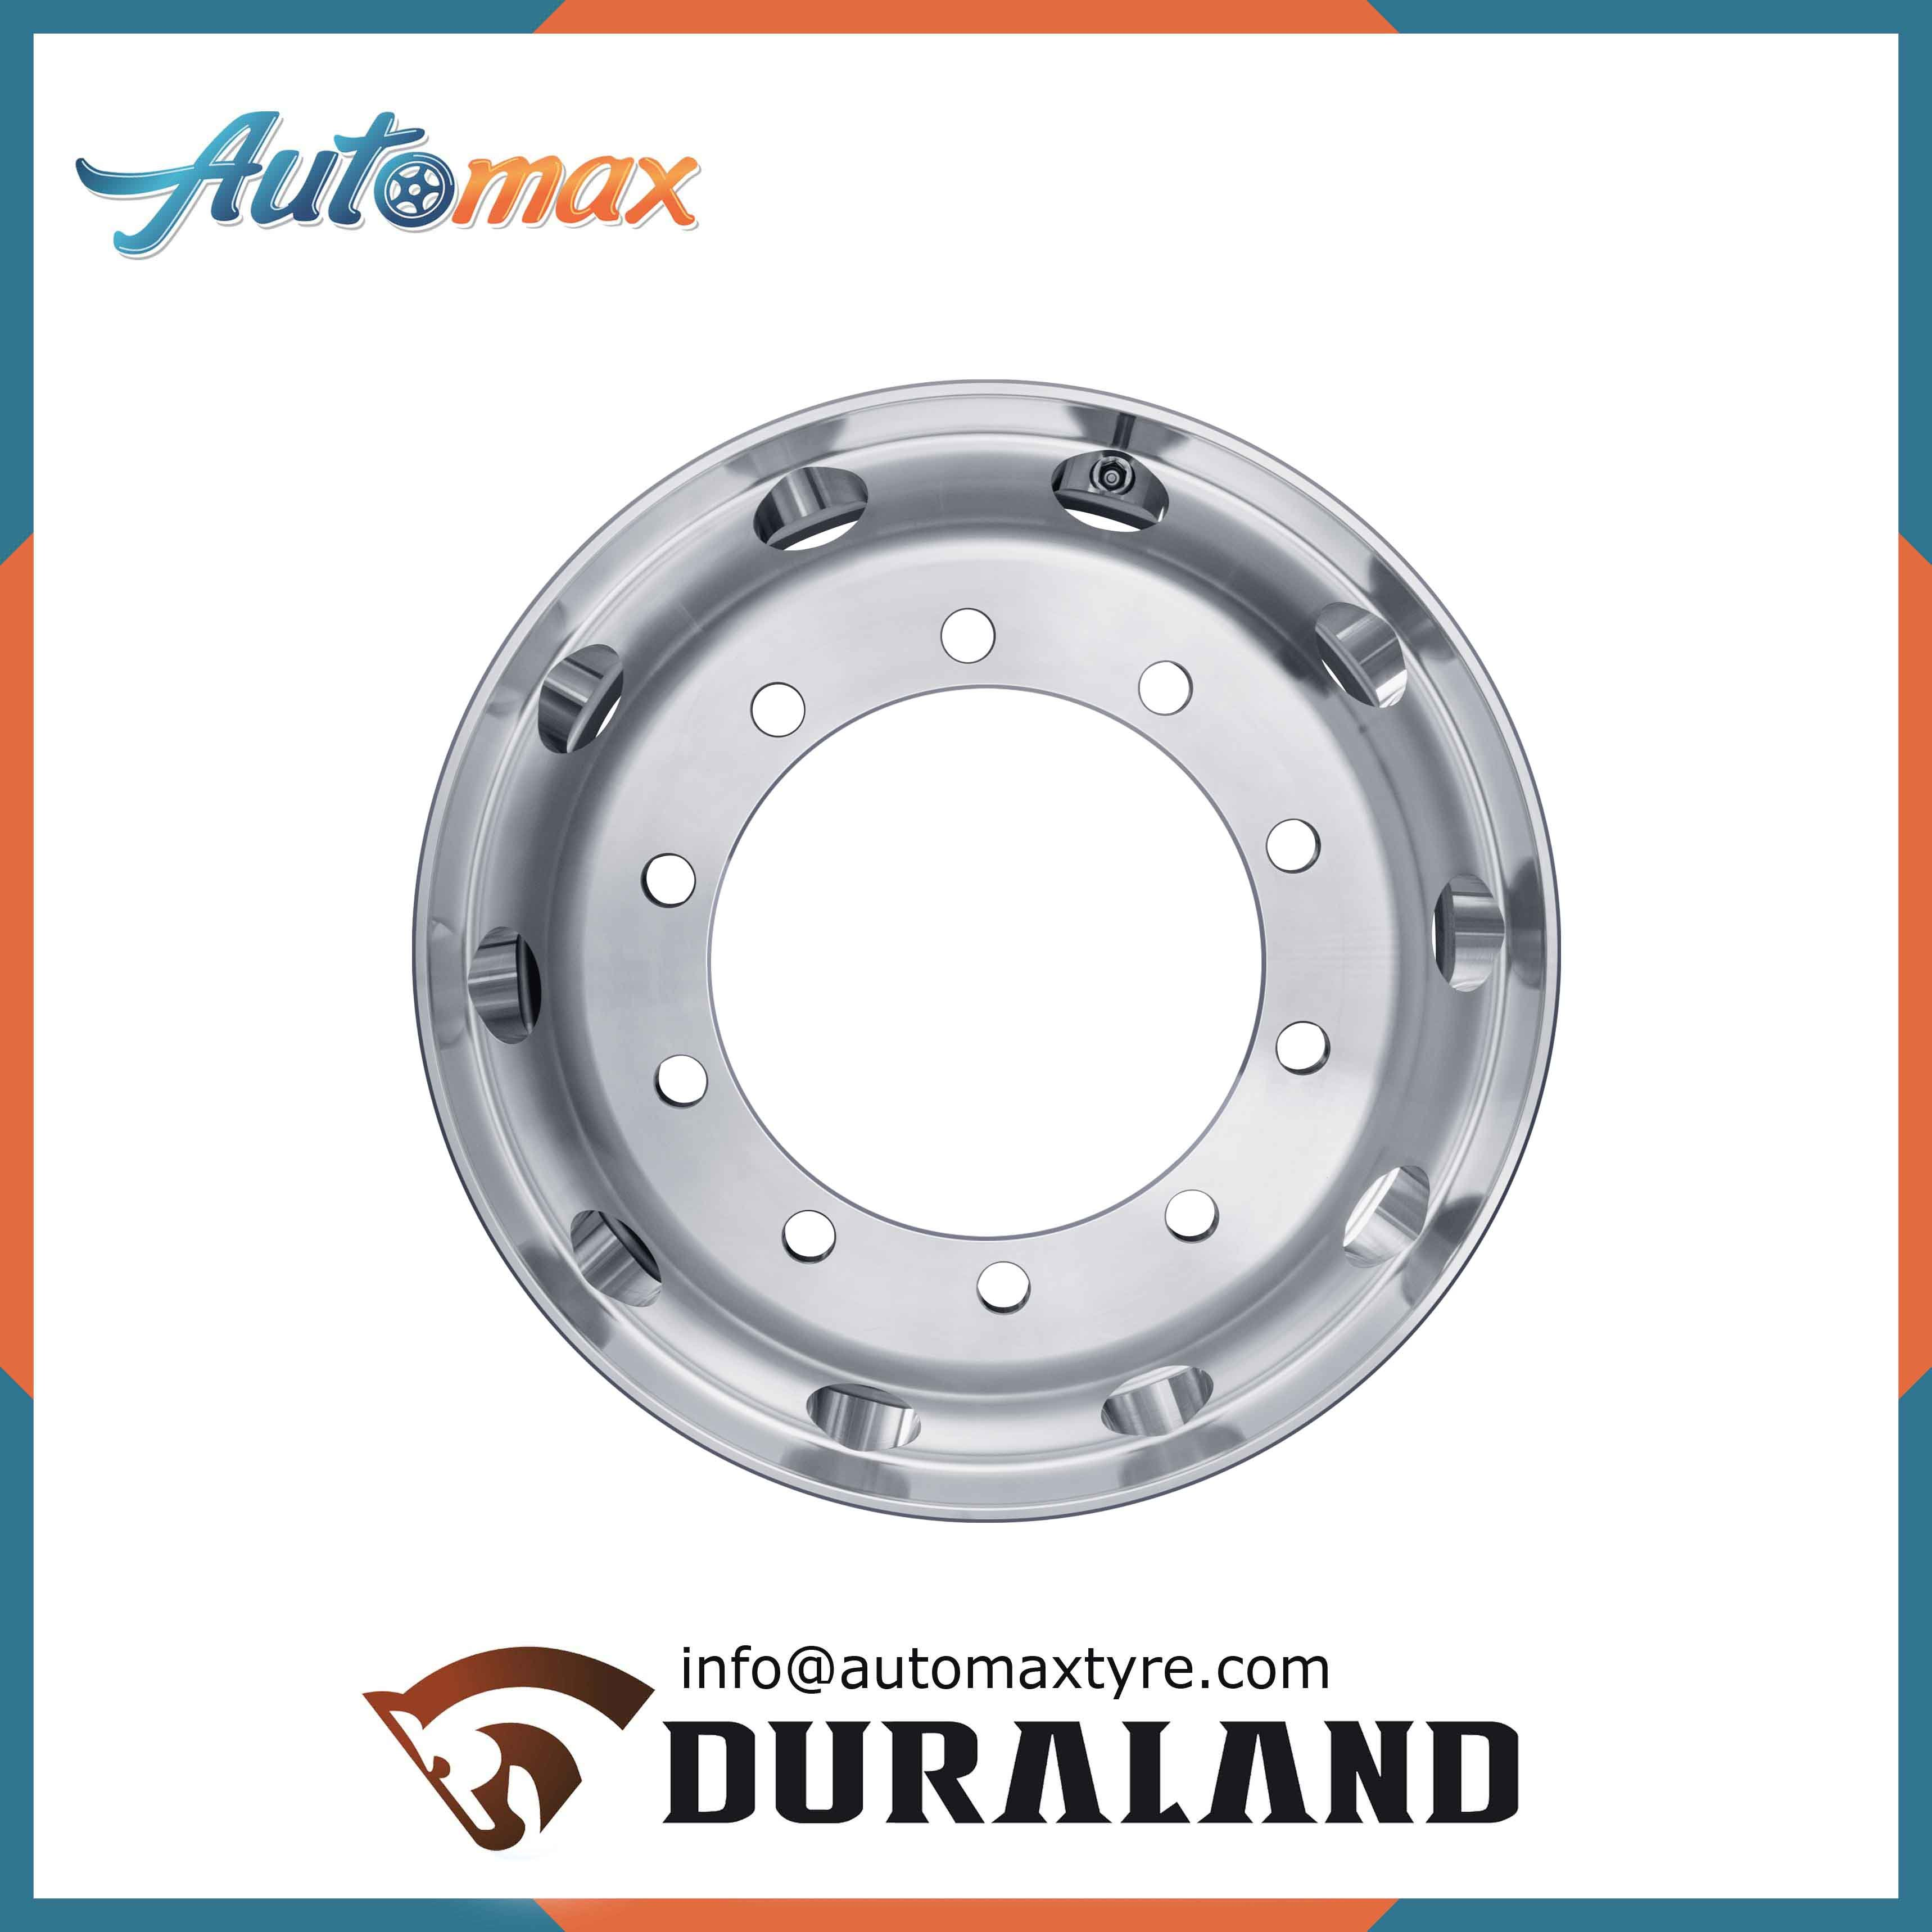 Double Polished Aluminum Wheels